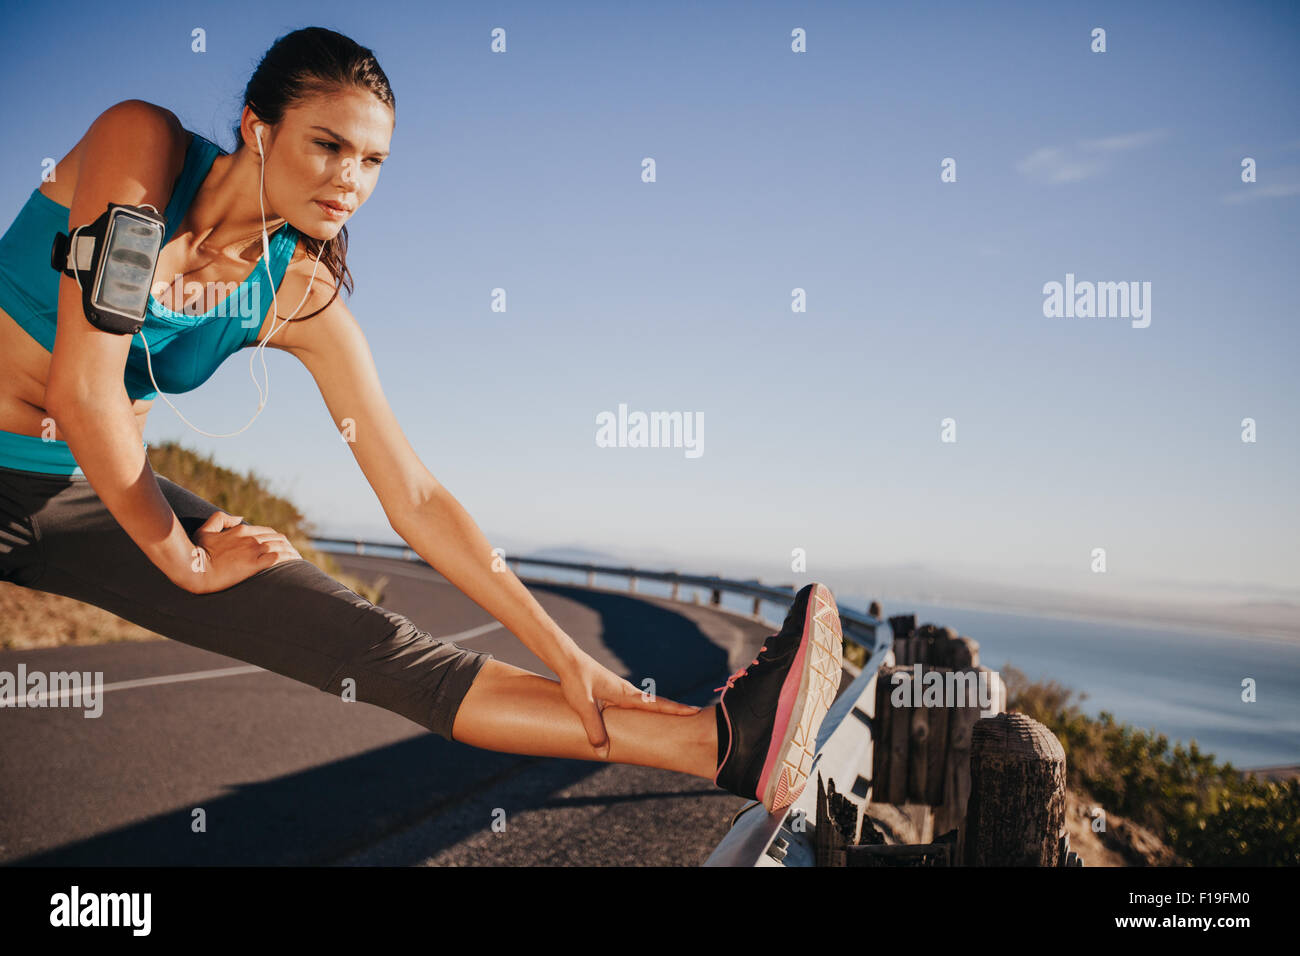 Outdoor shot of woman stretching her legs before a run. Determined runner preparing for outdoor training looking - Stock Image